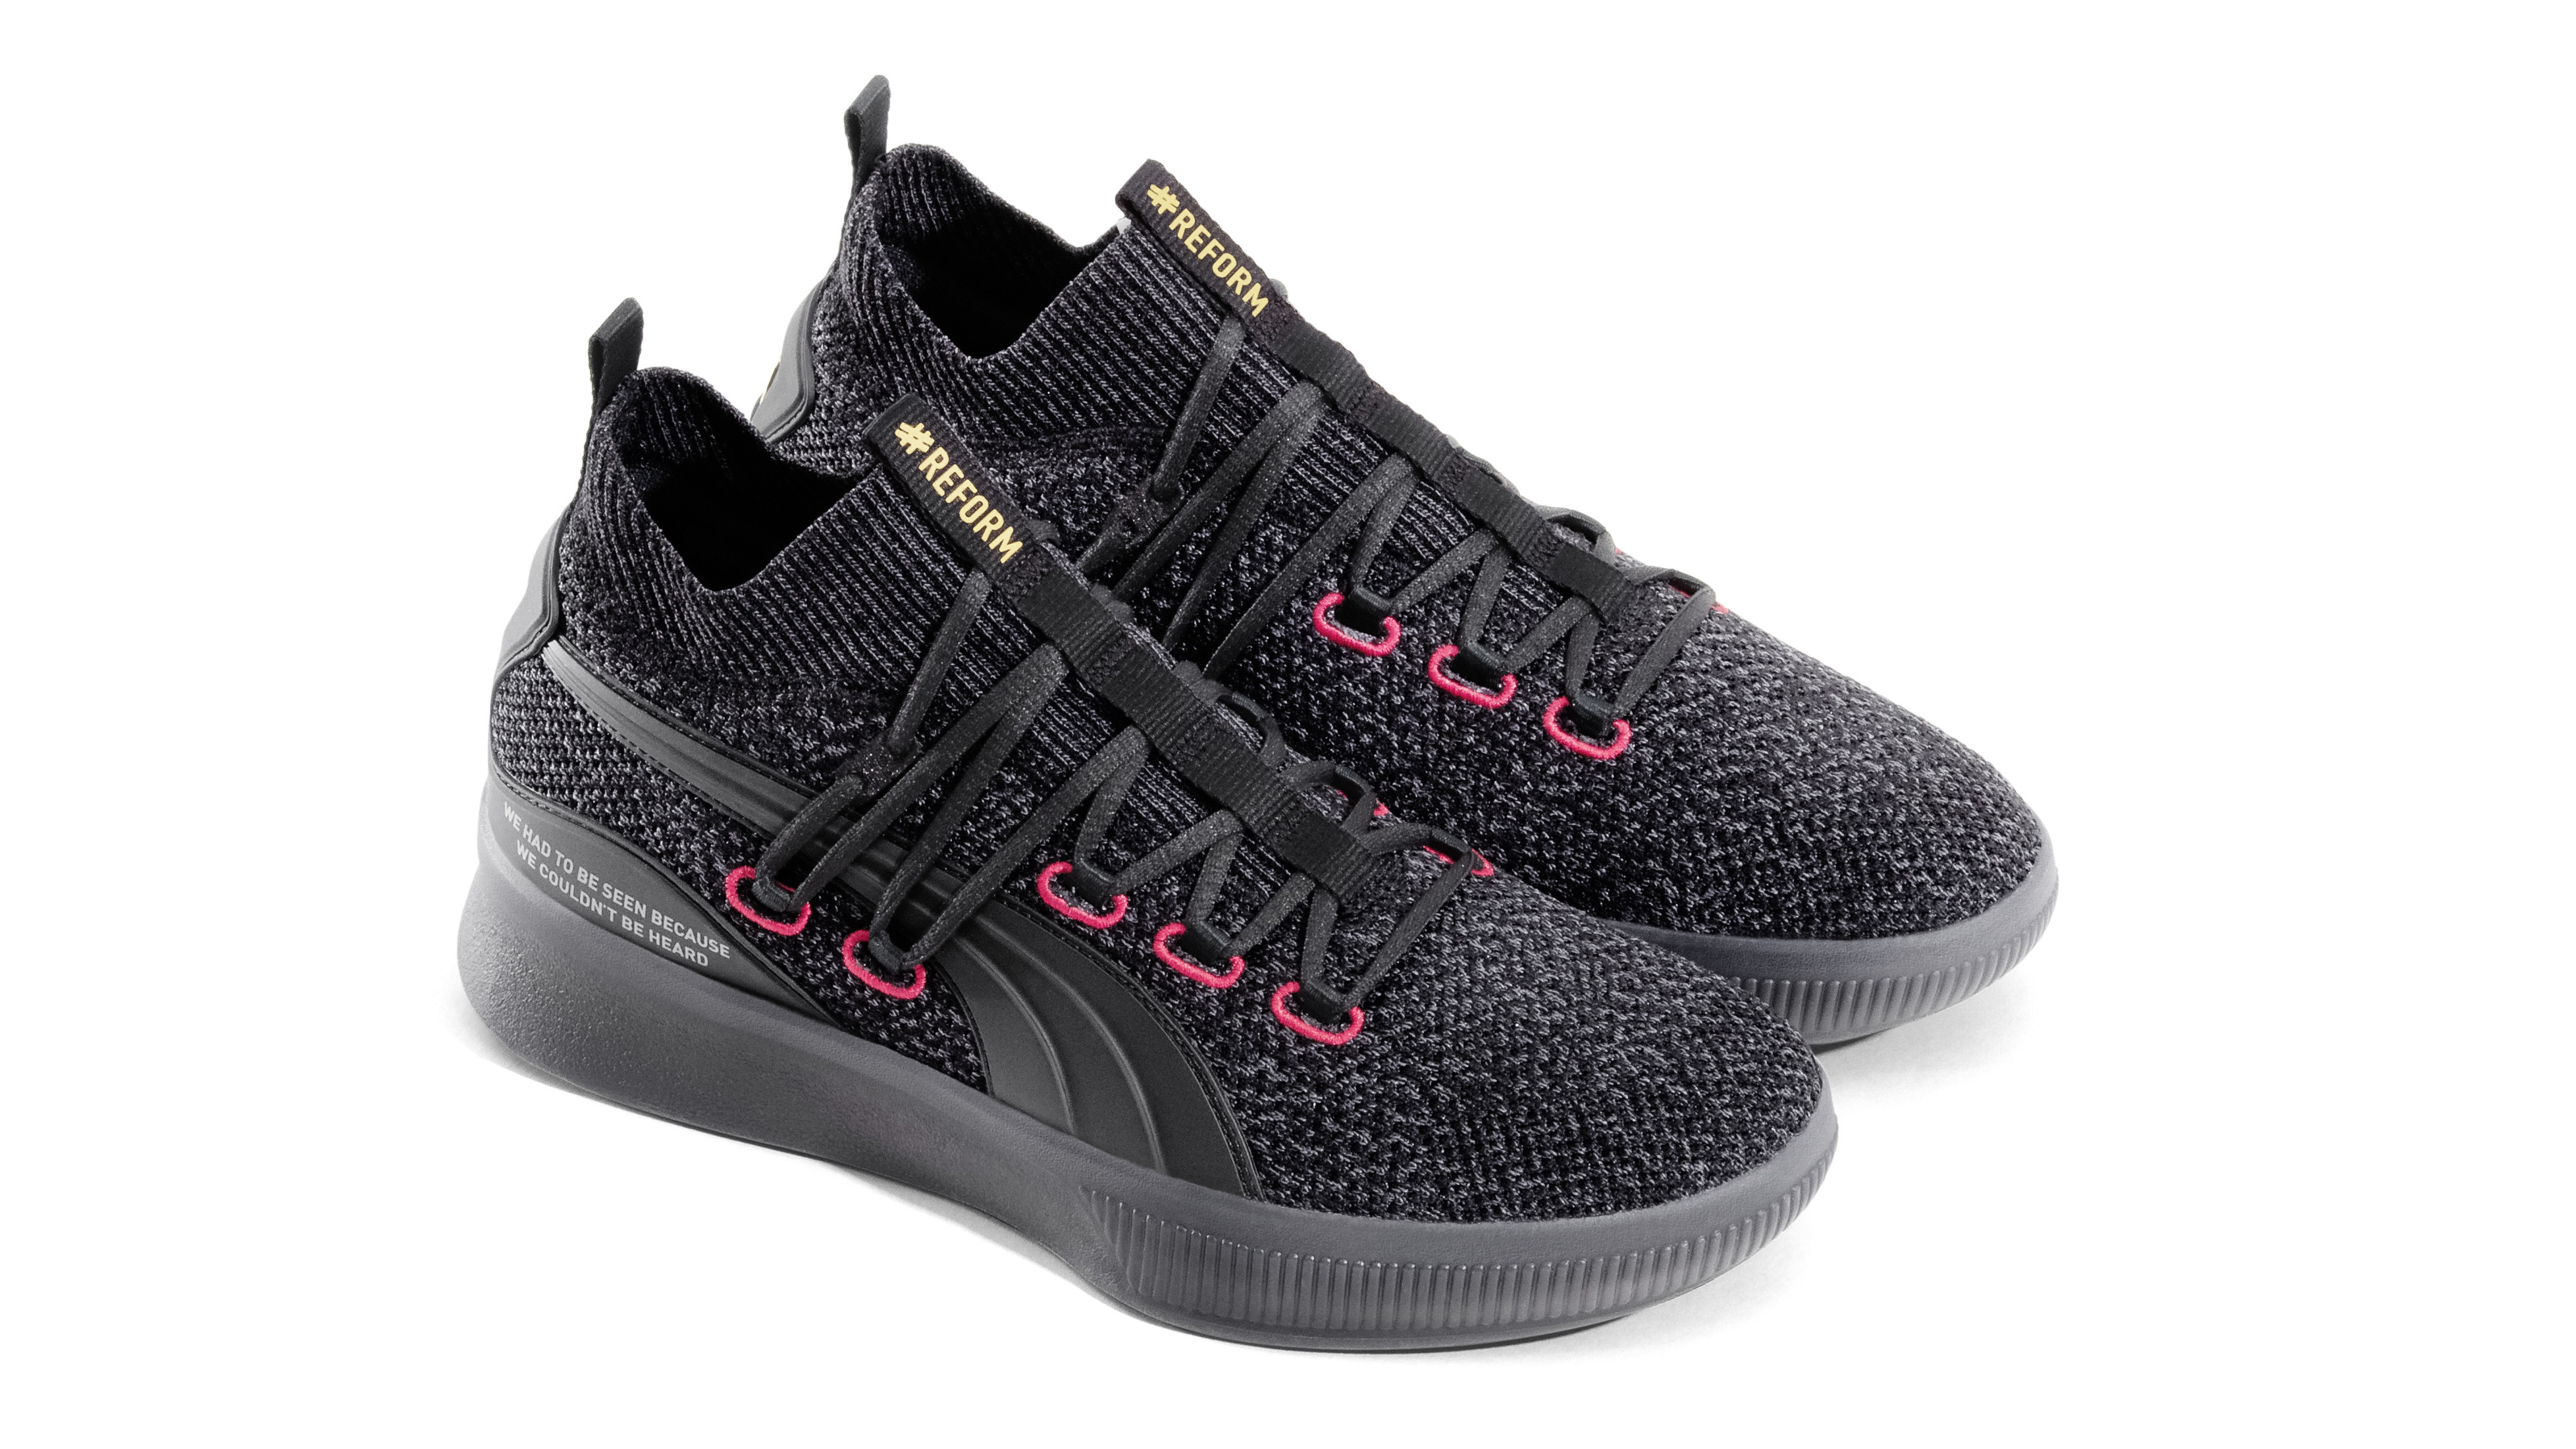 reputable site 9233d 33399 Puma Clyde Court #Reform Meek Mill Release Date | Sole Collector